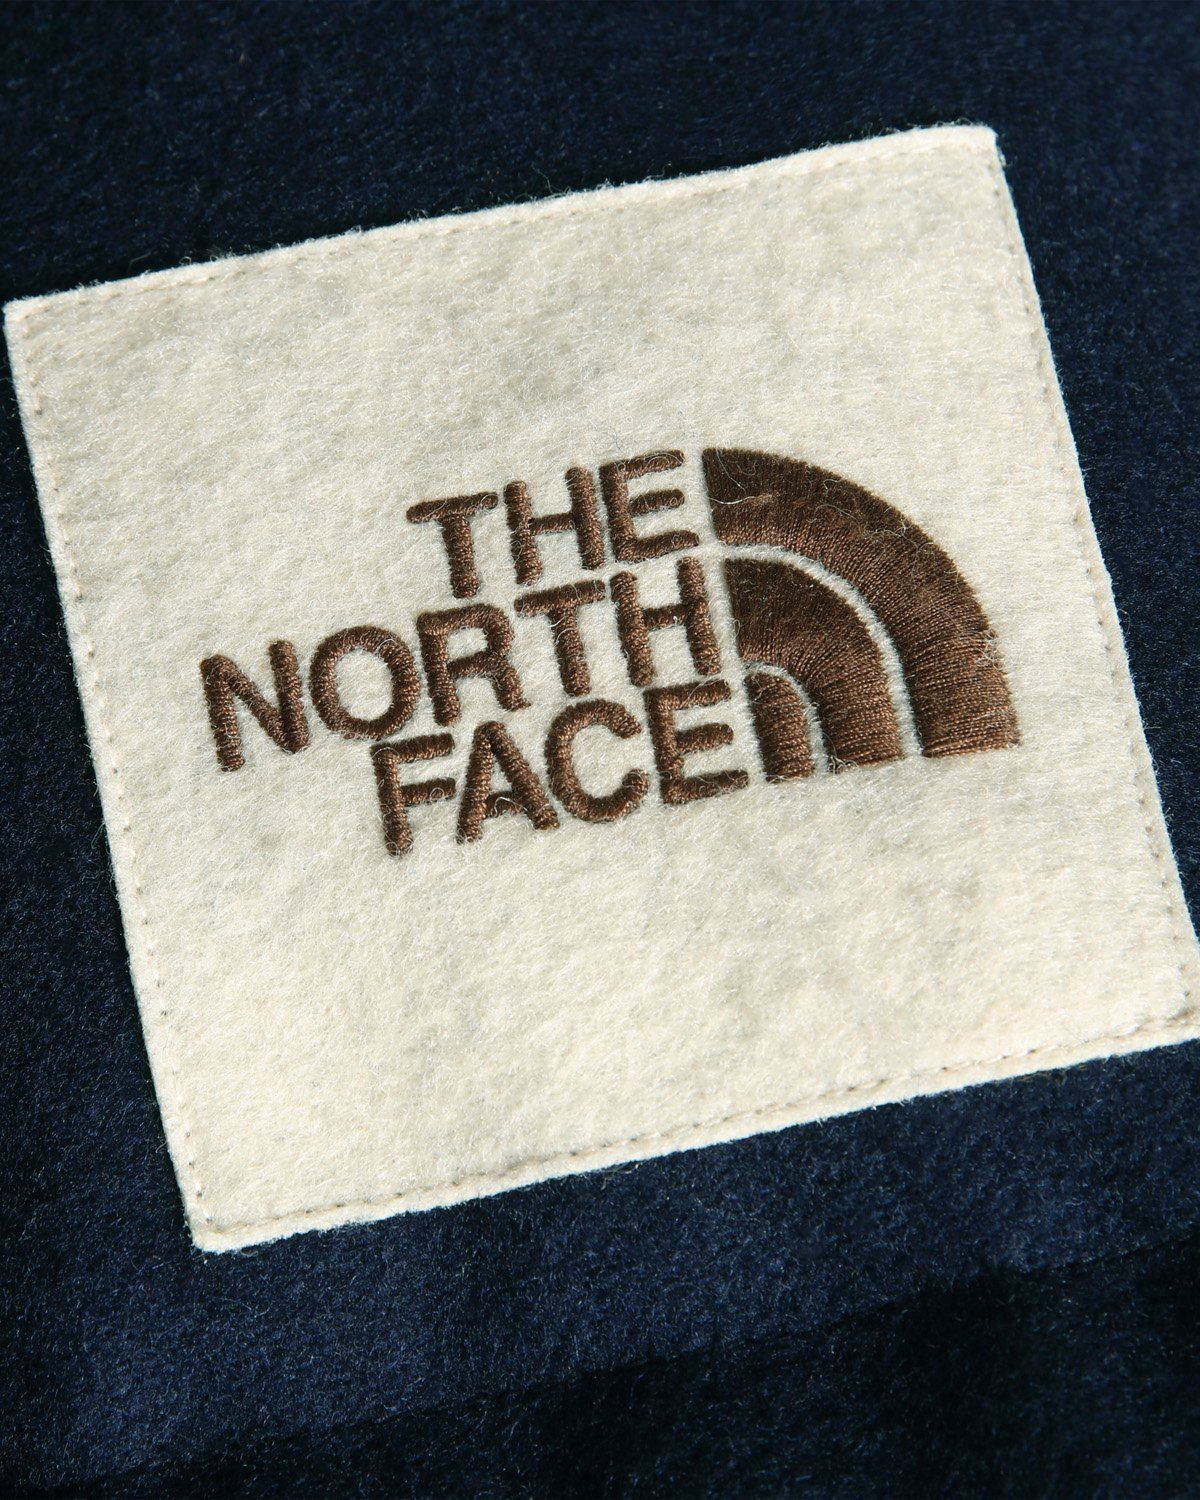 The North Face Brown Label — Larkspur Wool Down Jacket Navy Women - Image 5